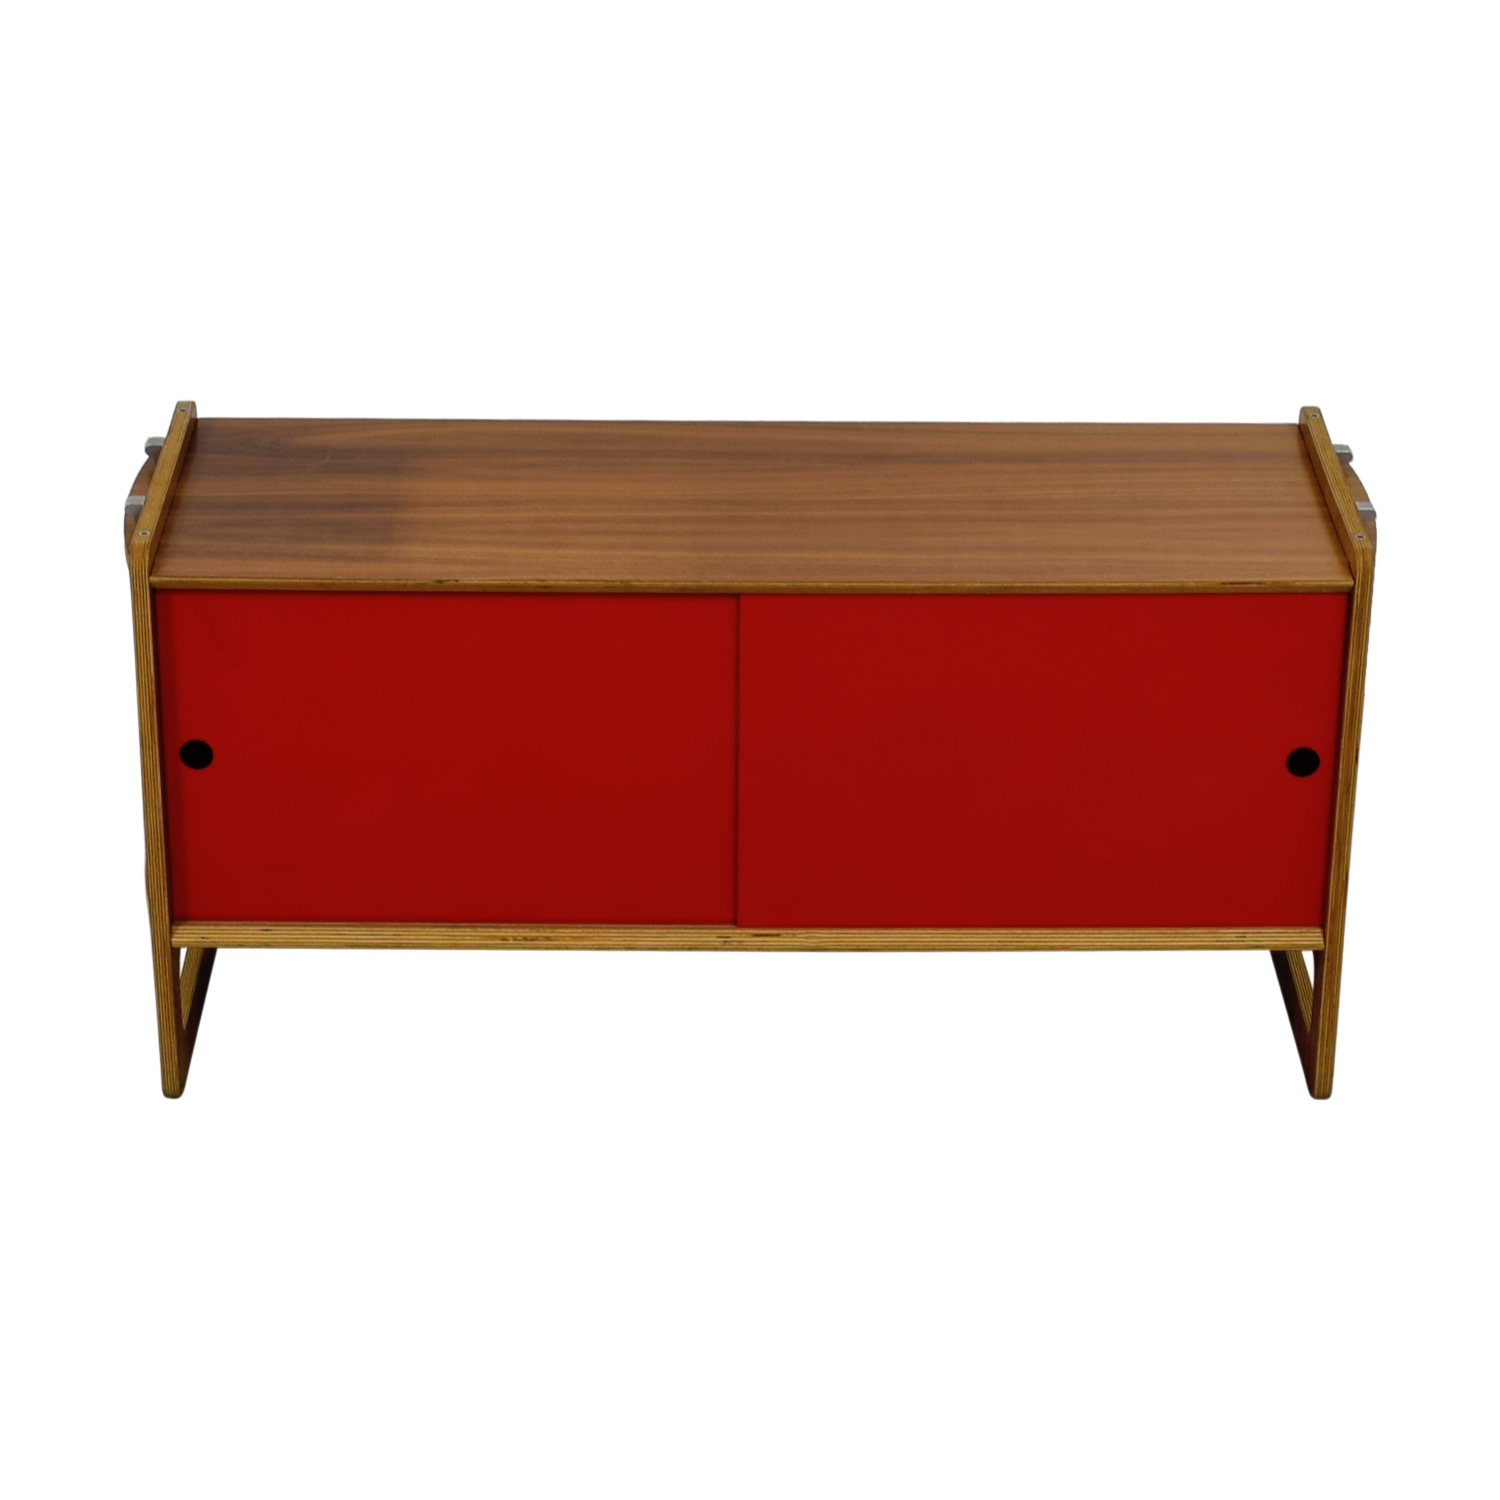 Wood and Red Sliding Door Cabinet for sale